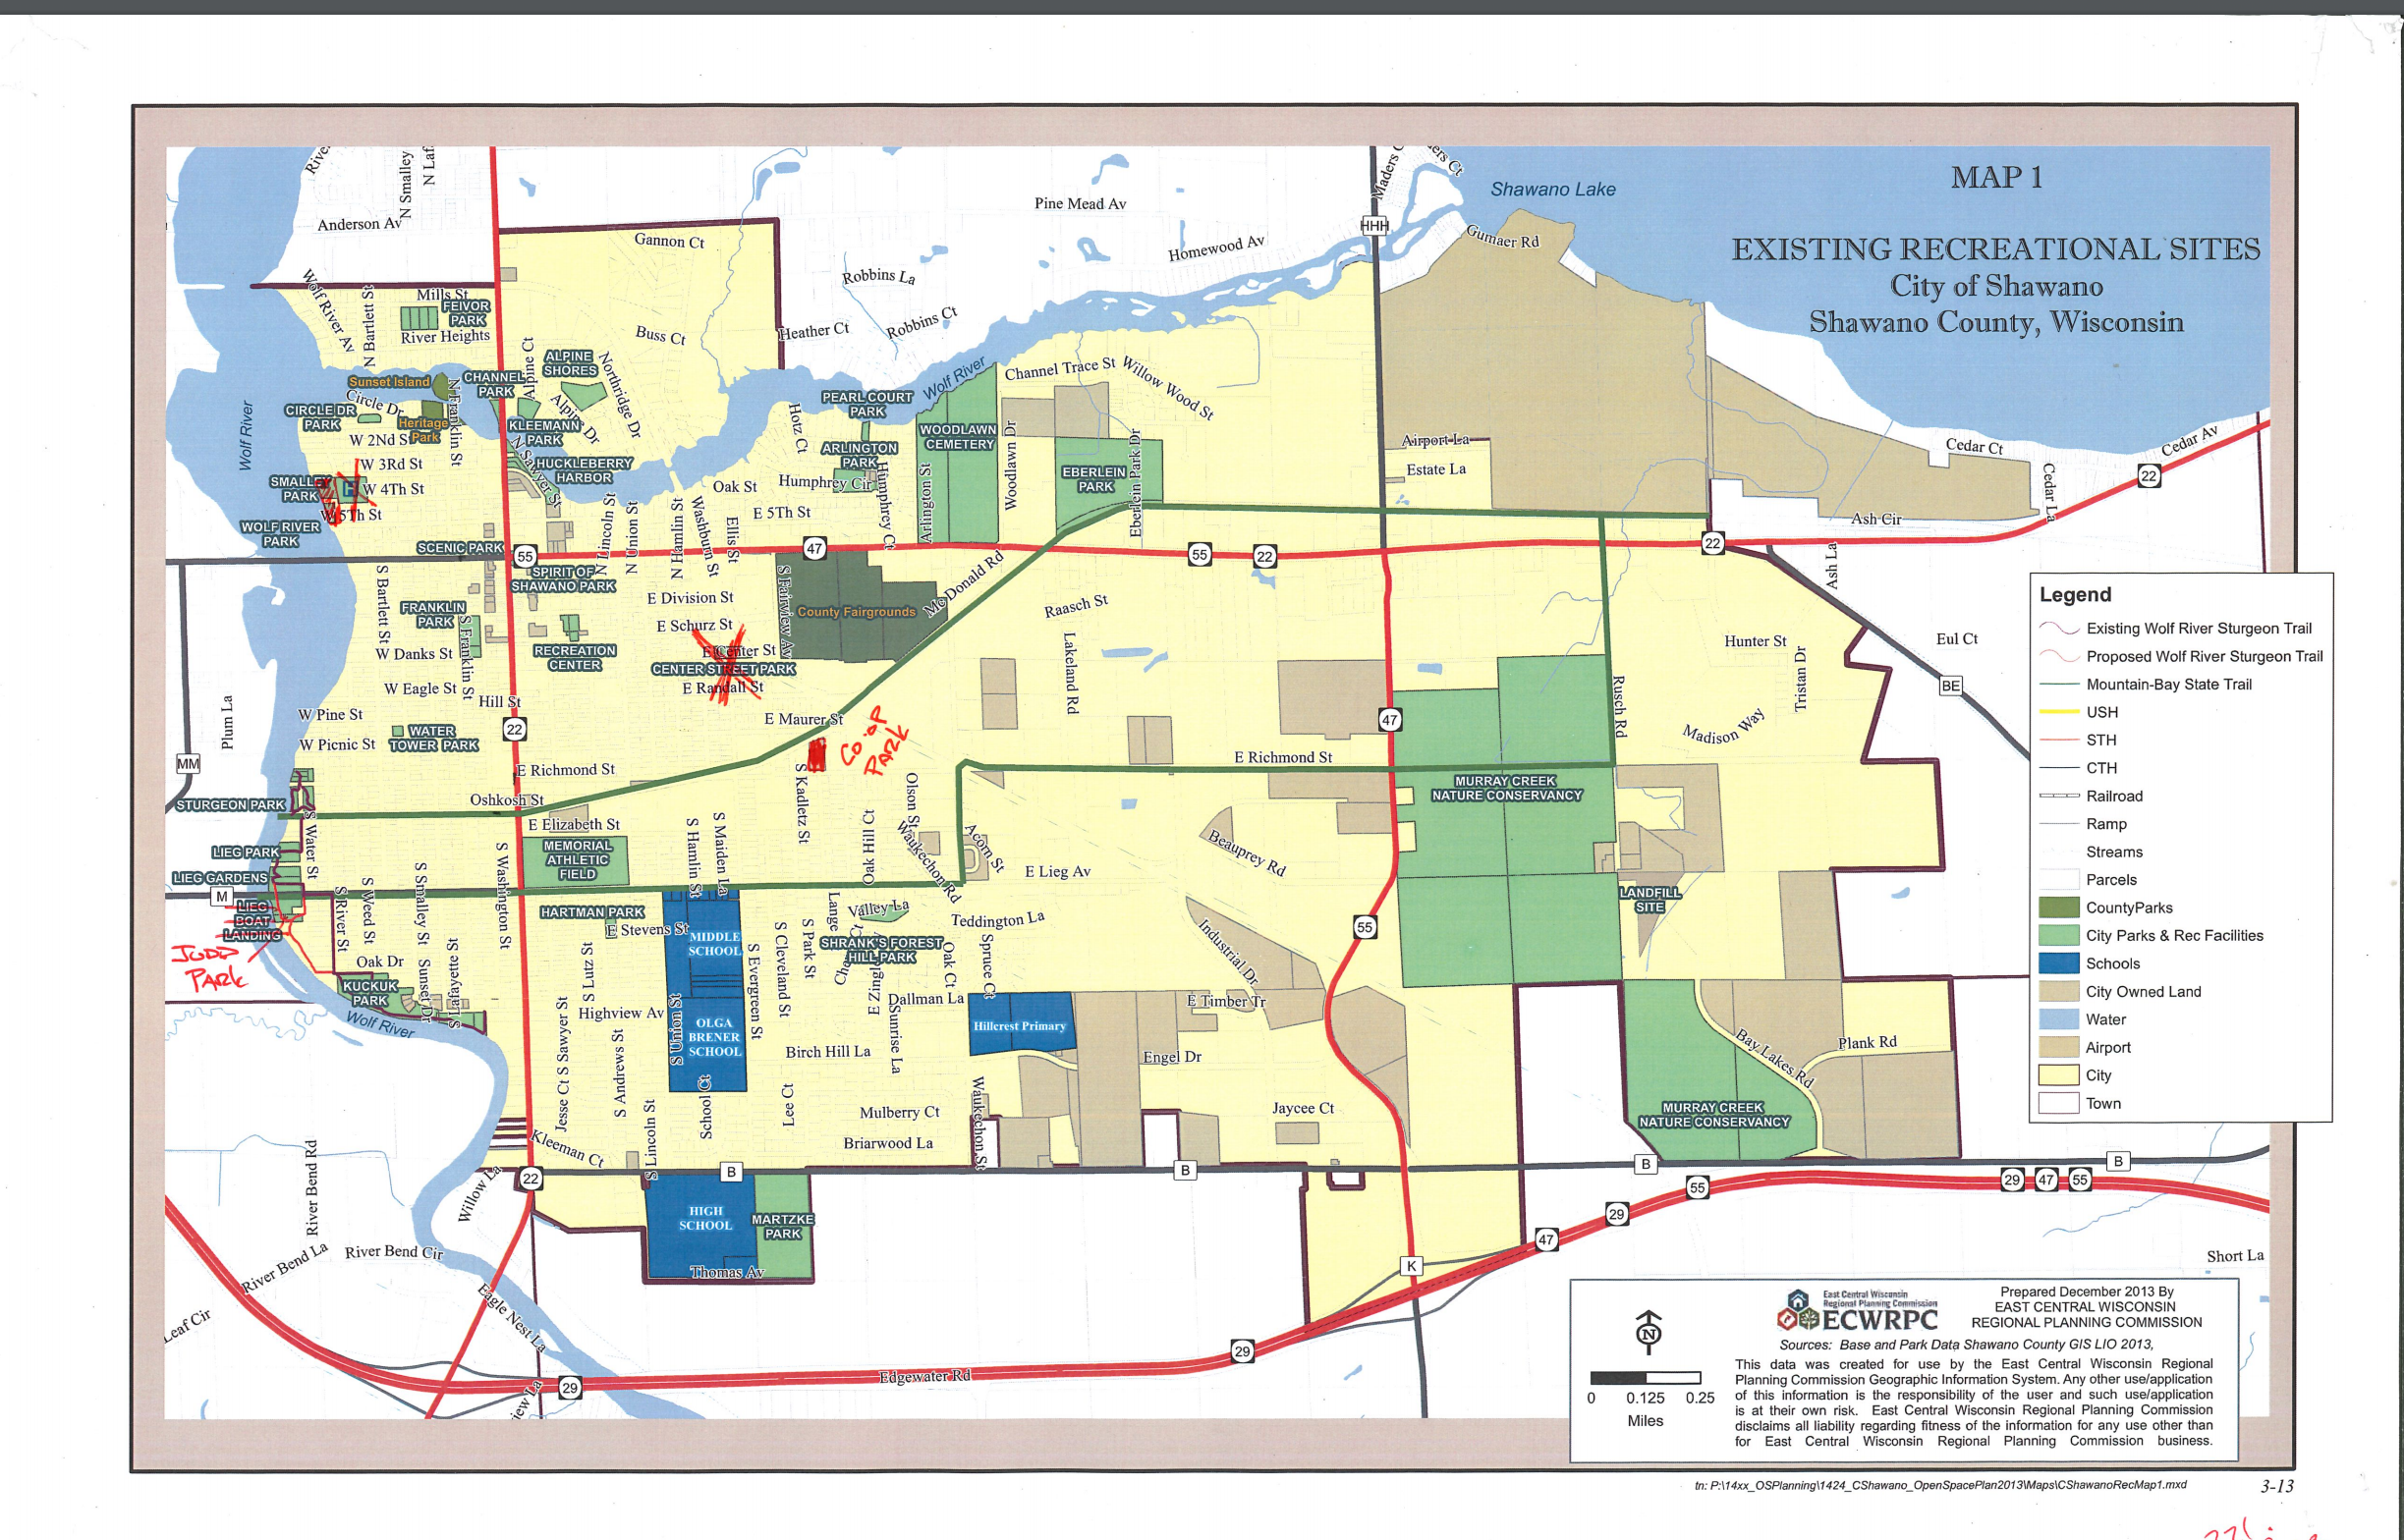 Update City of Shawano parks and make green on maps - Google ... on ipad maps, road map usa states maps, amazon fire phone maps, gogole maps, googie maps, topographic maps, msn maps, bing maps, gppgle maps, search maps, stanford university maps, microsoft maps, aerial maps, online maps, android maps, googlr maps, waze maps, aeronautical maps, iphone maps, goolge maps,